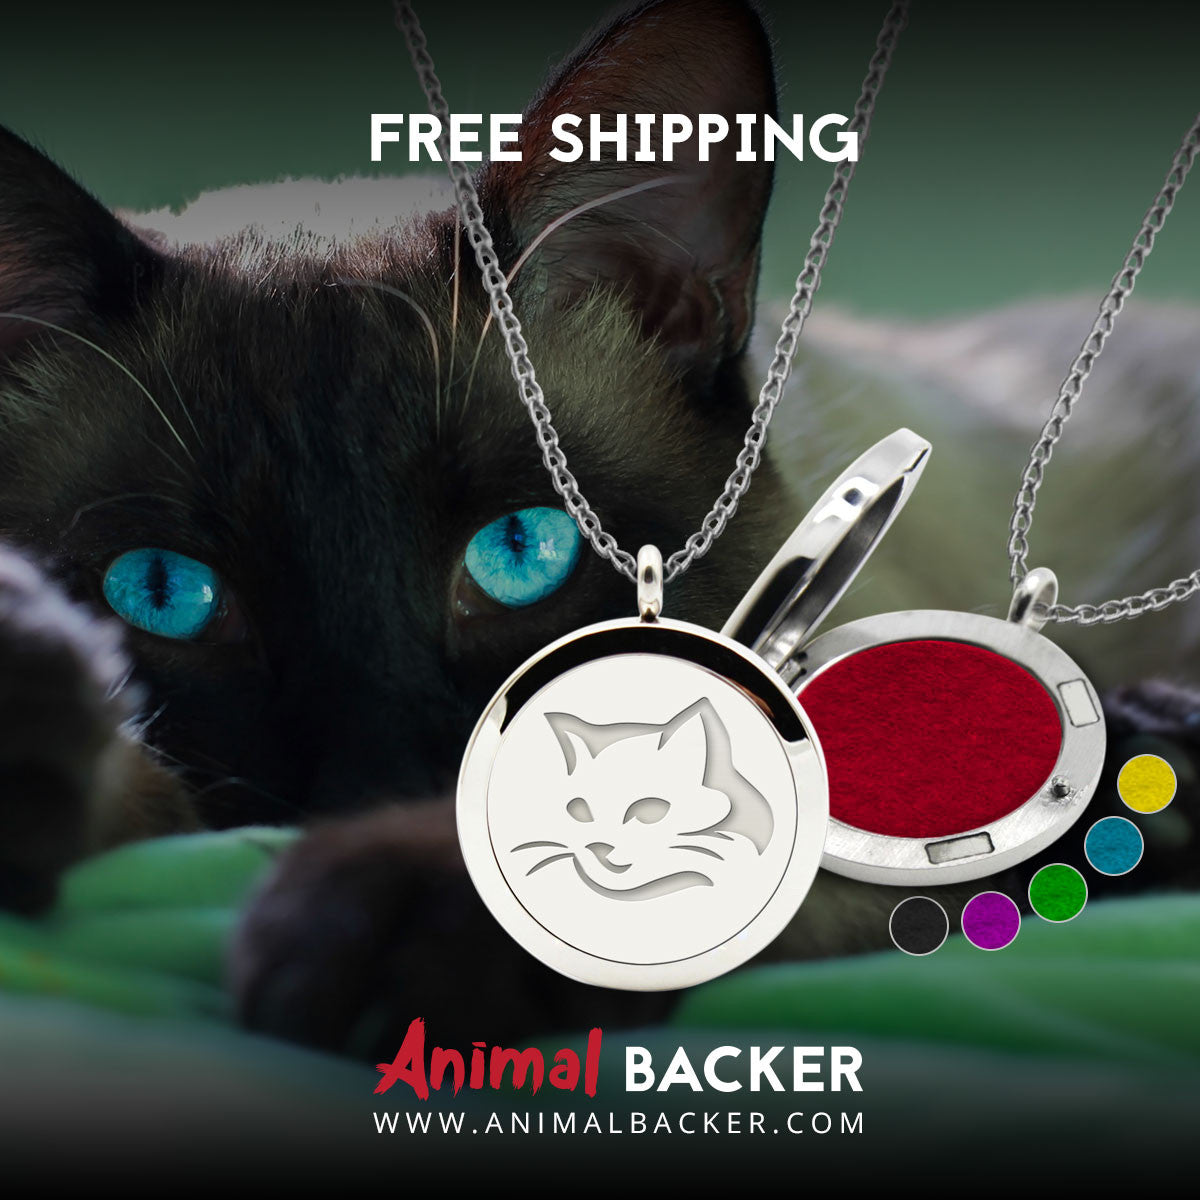 aroma theraphy oil diffuser necklace cat animal backer. Black Bedroom Furniture Sets. Home Design Ideas